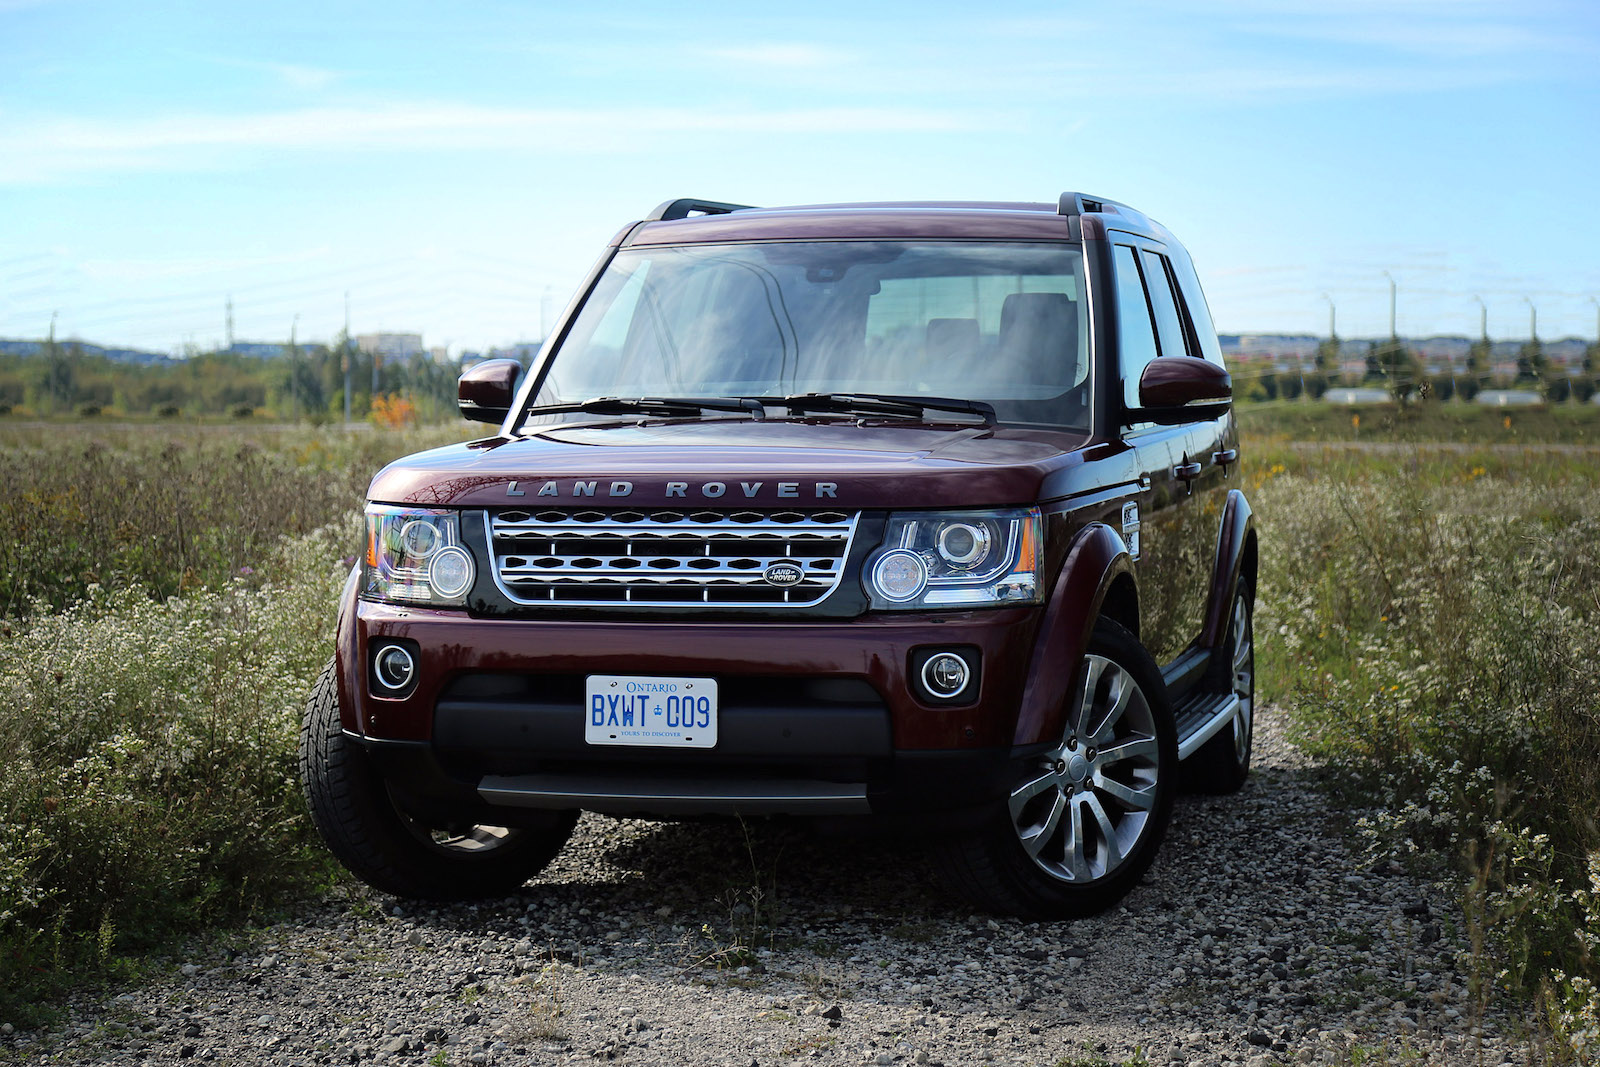 brush horse rover motors product hse white discovery guard land img landrover